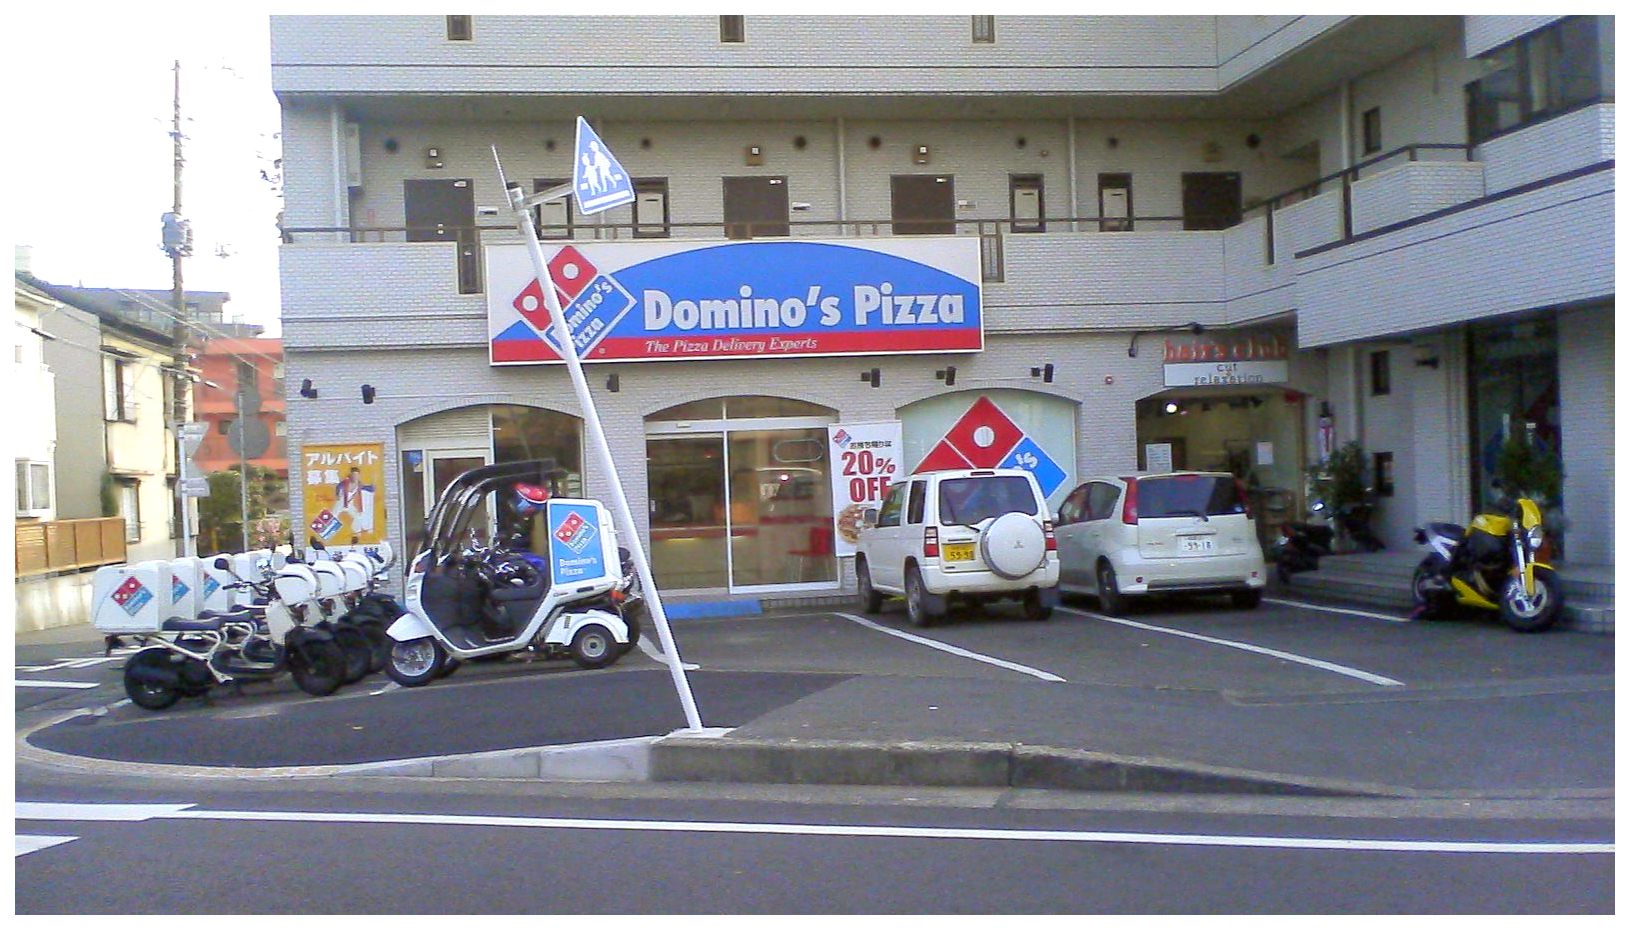 Delivery scooter motor bikes in fron tof Domino's pizza outlet in Japan